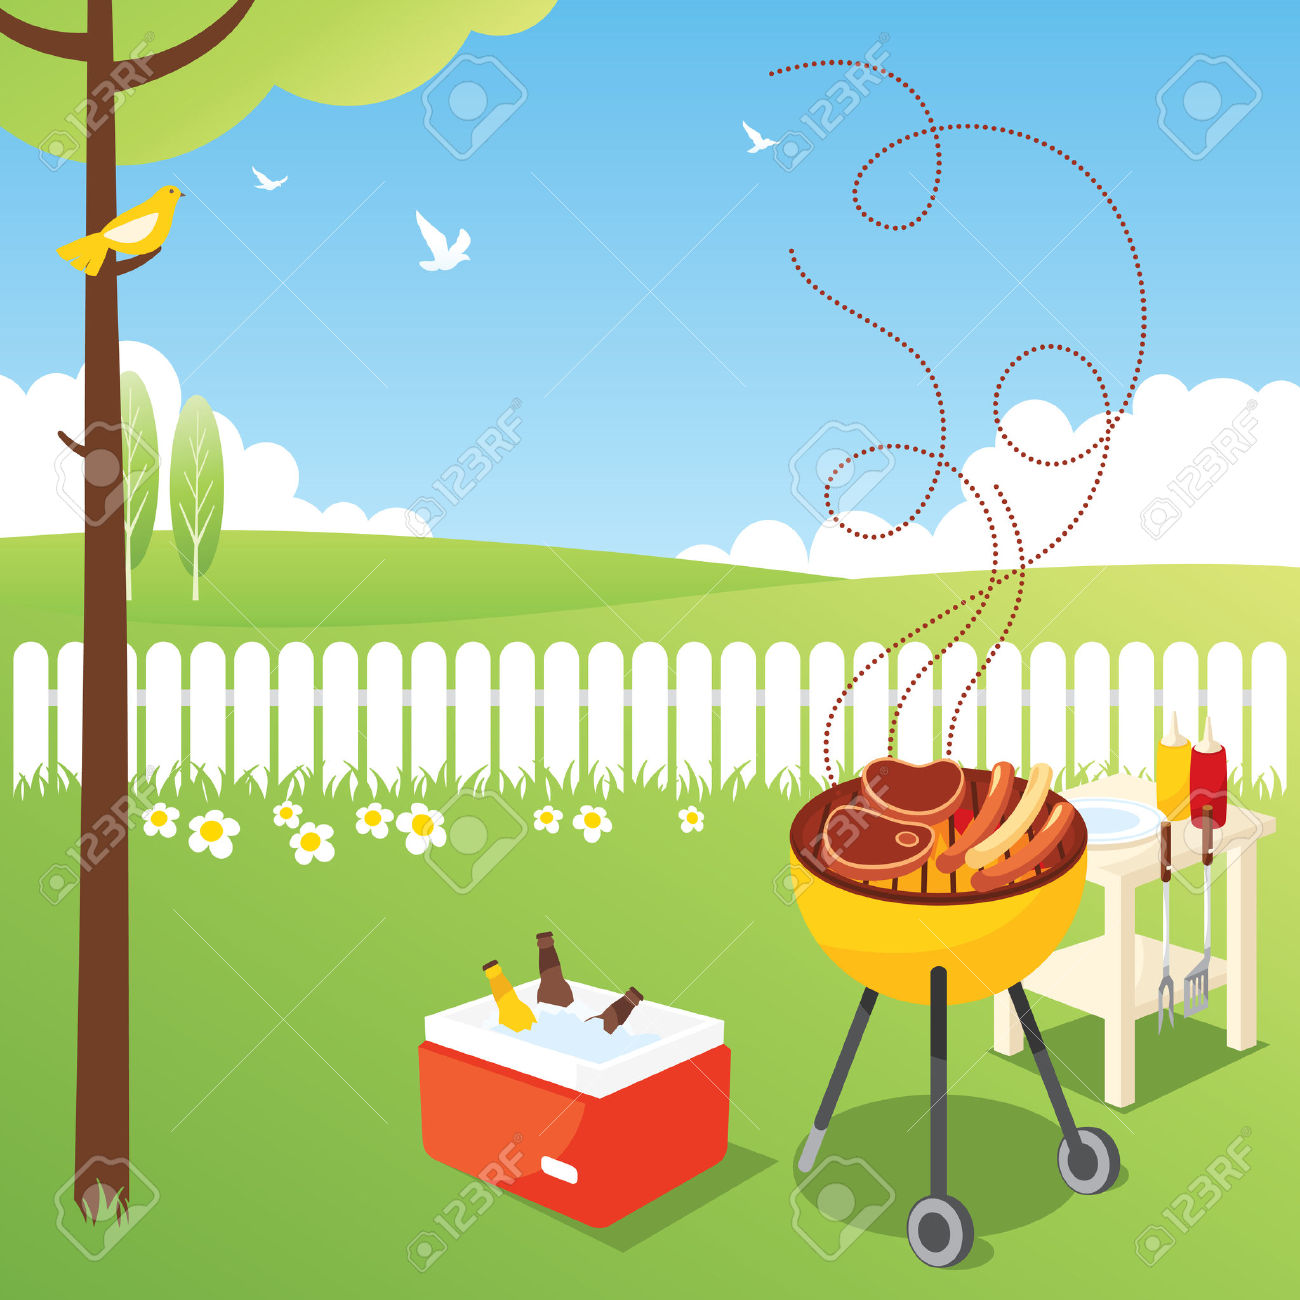 Barbecue clipart bbq party Barbecue Party Dartmouthincolumbus BBQ org